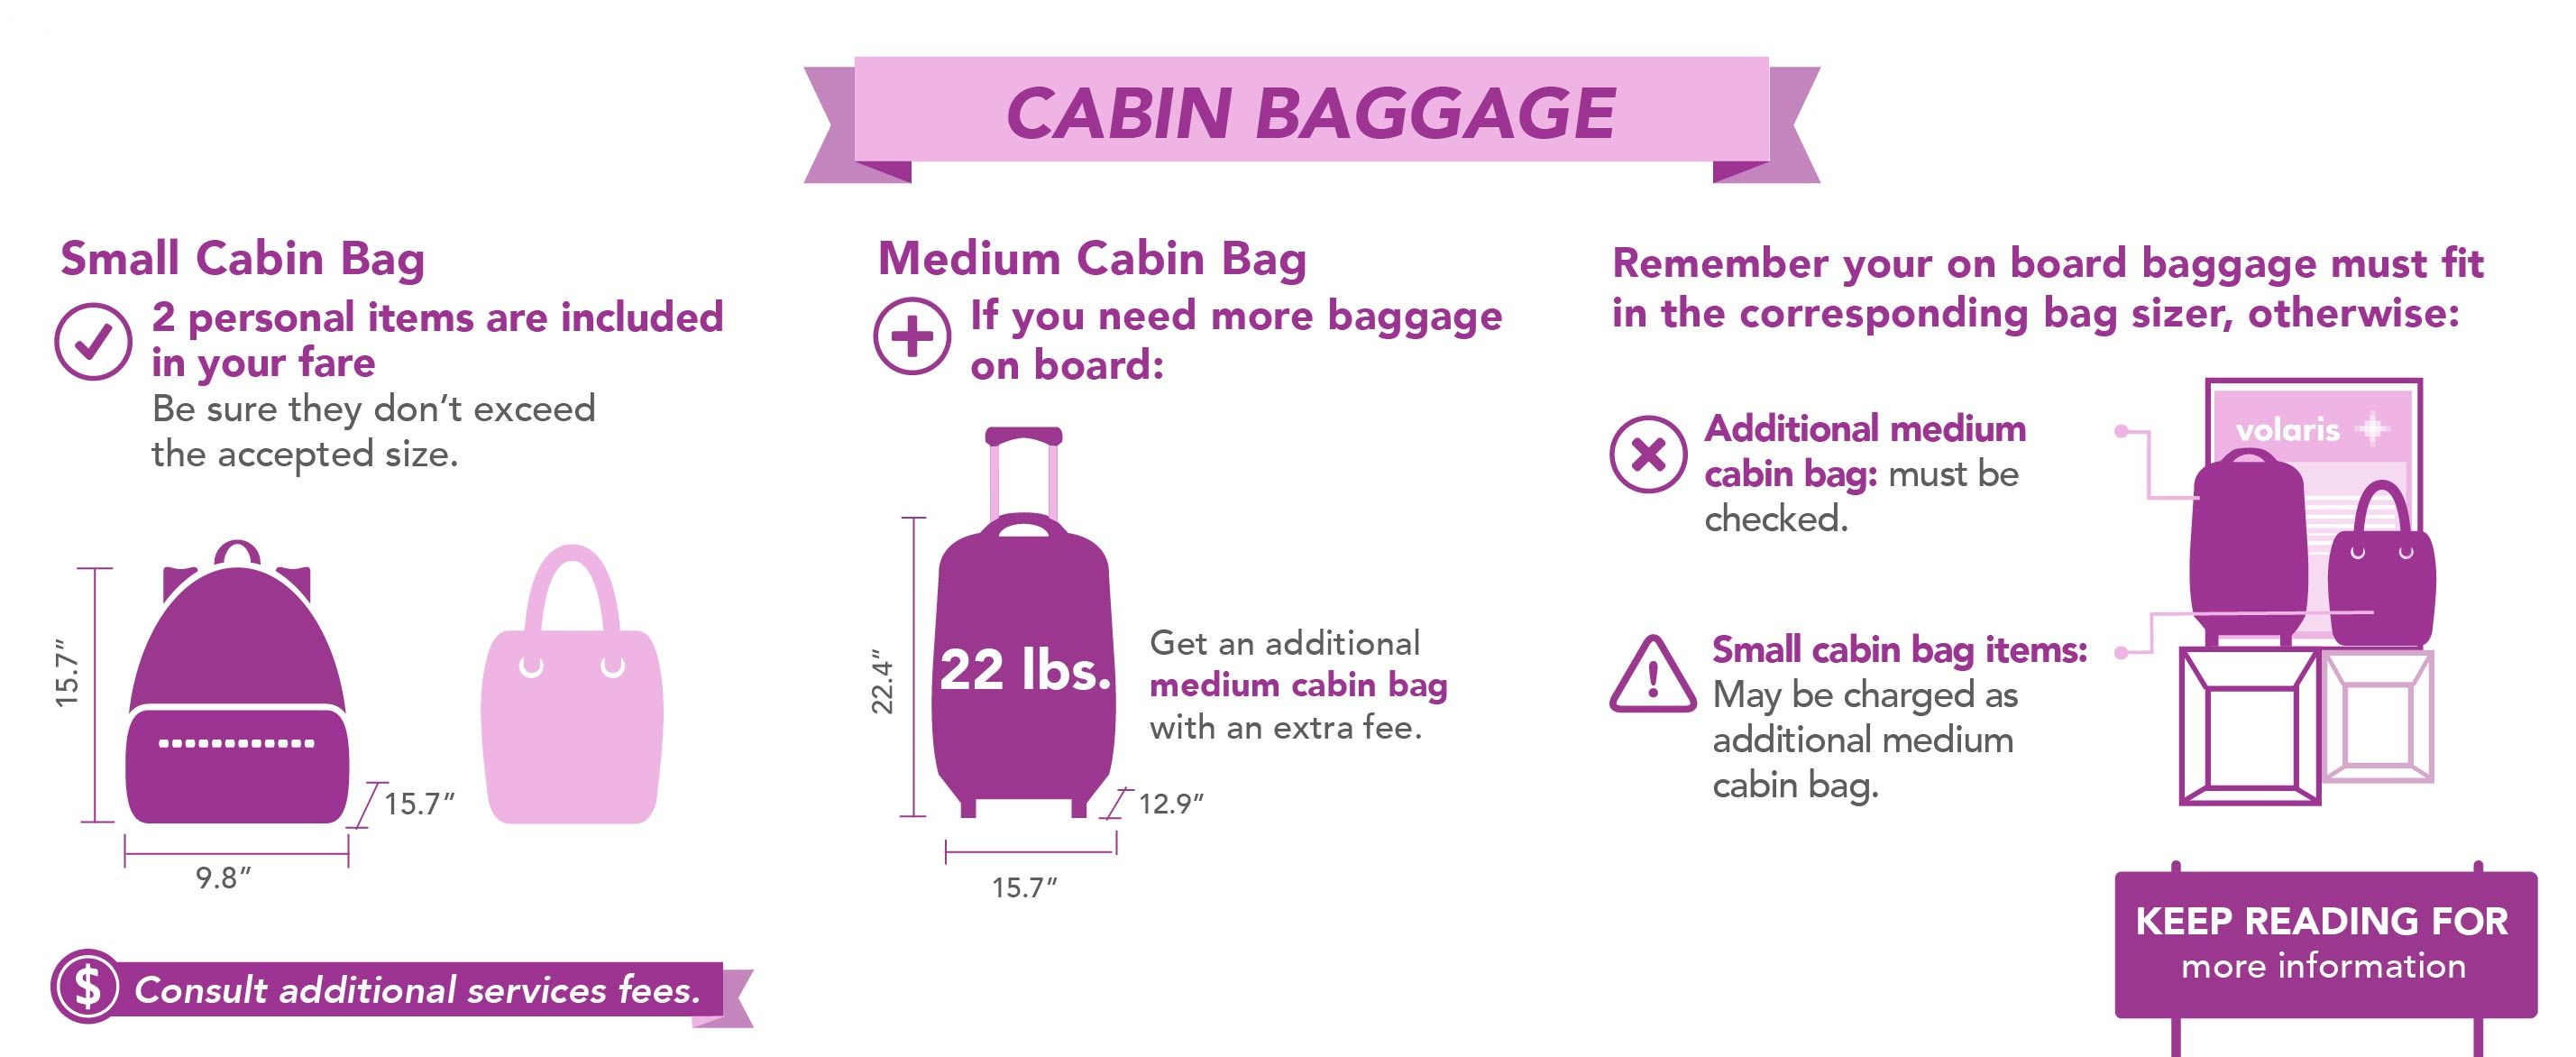 On board baggage | Carry on i 2019